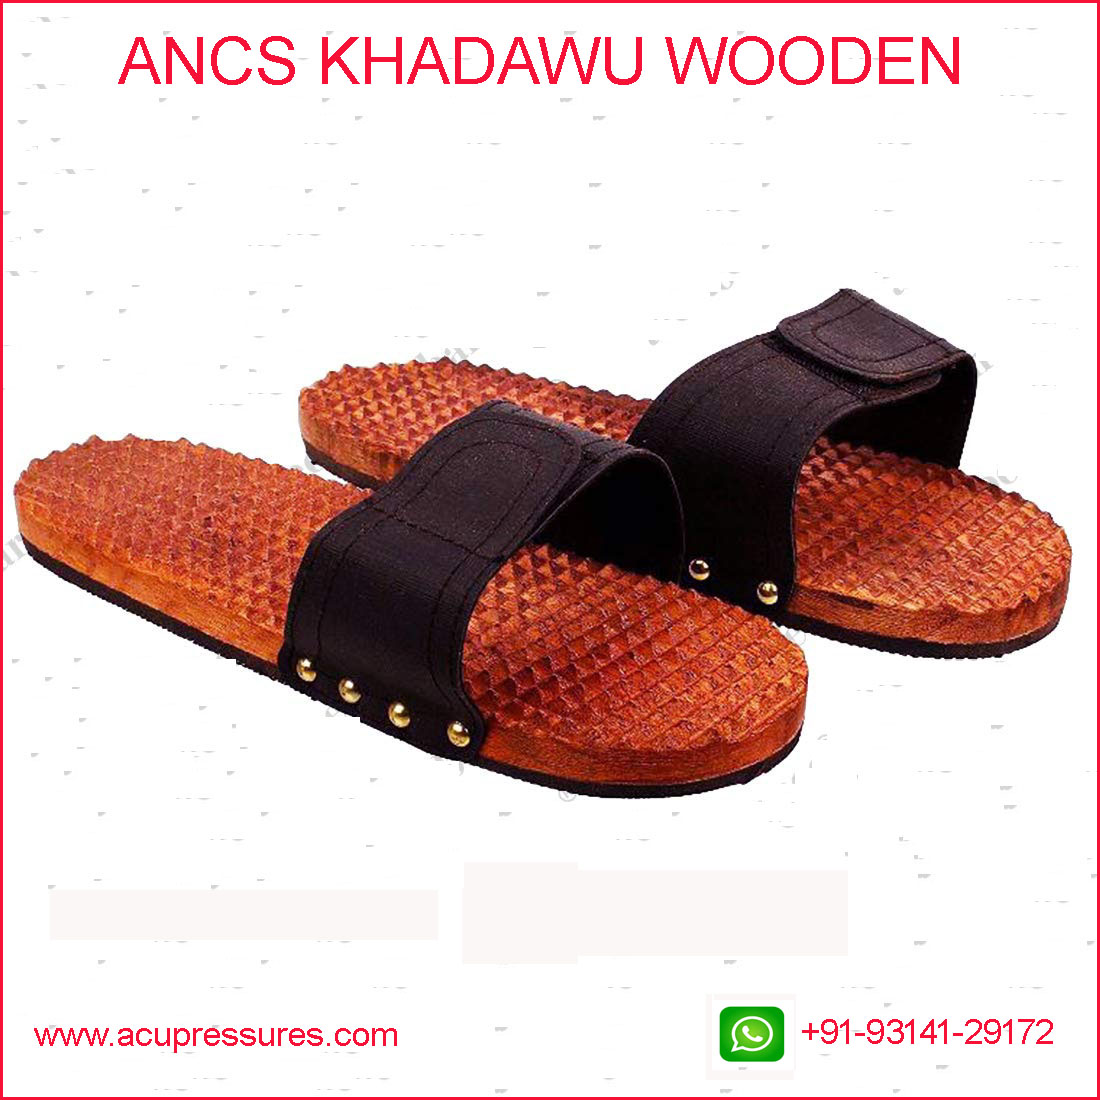 Acupressure Khadawoo wooden best